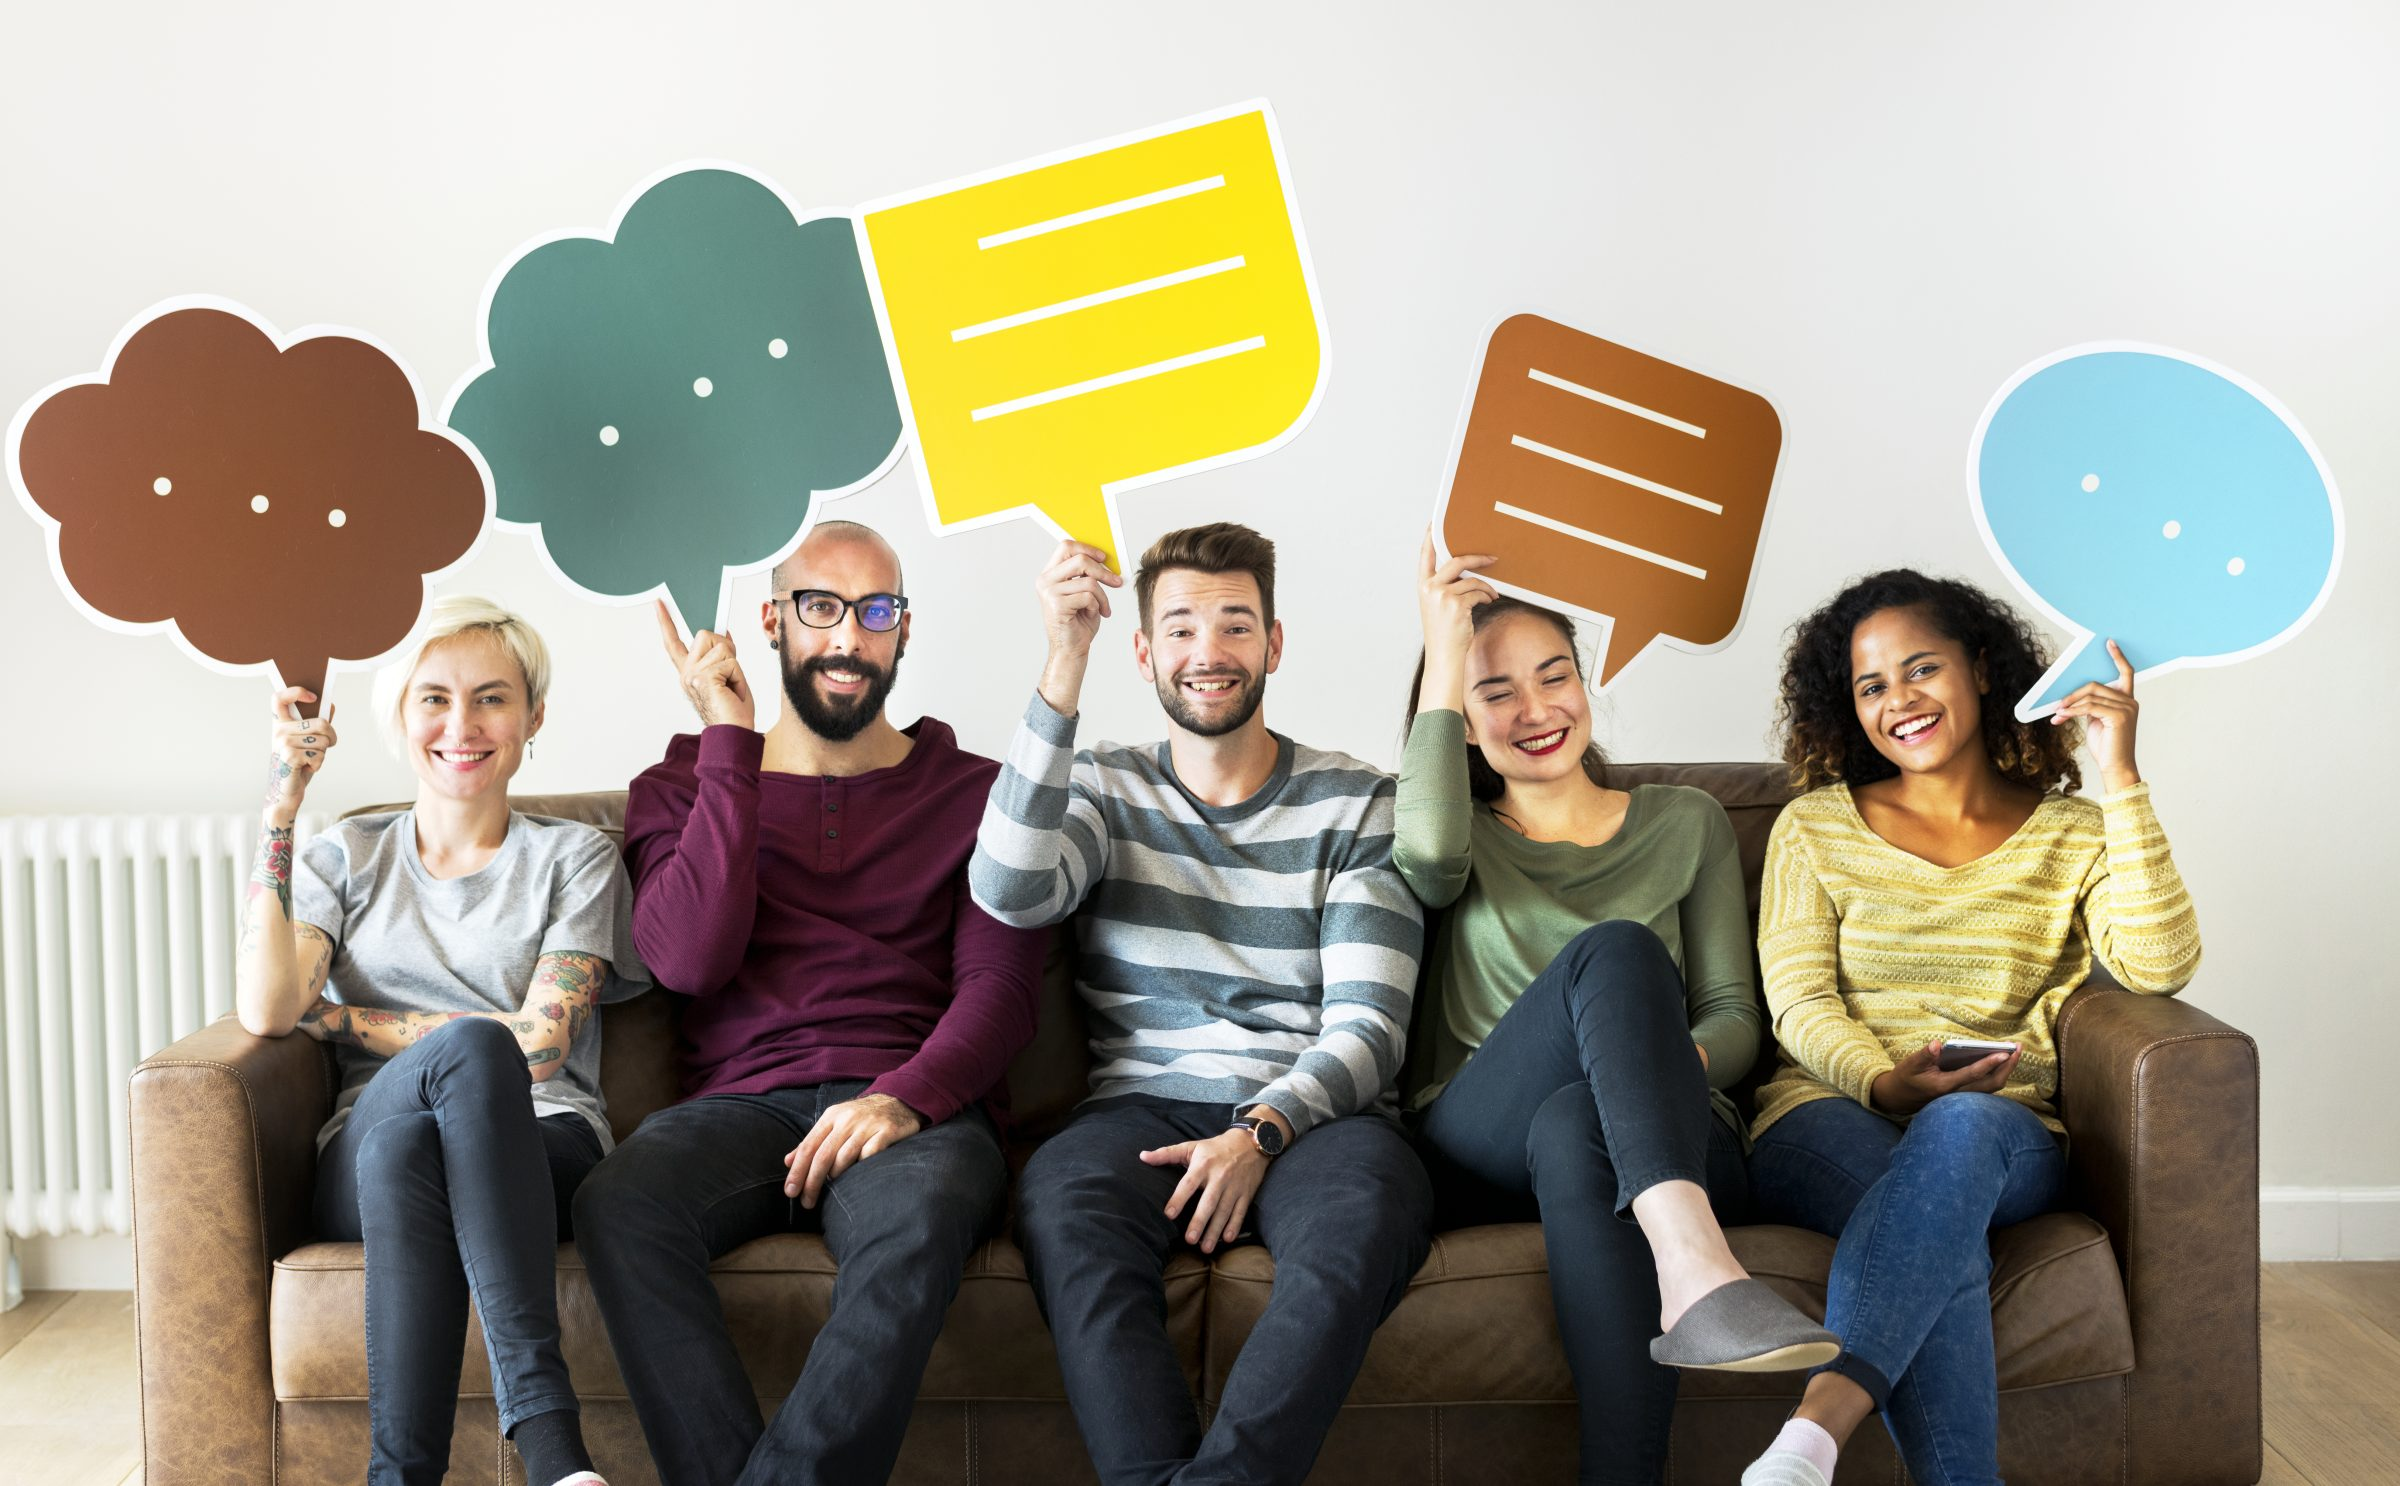 Colloquialism, chatbots and the power of conversation